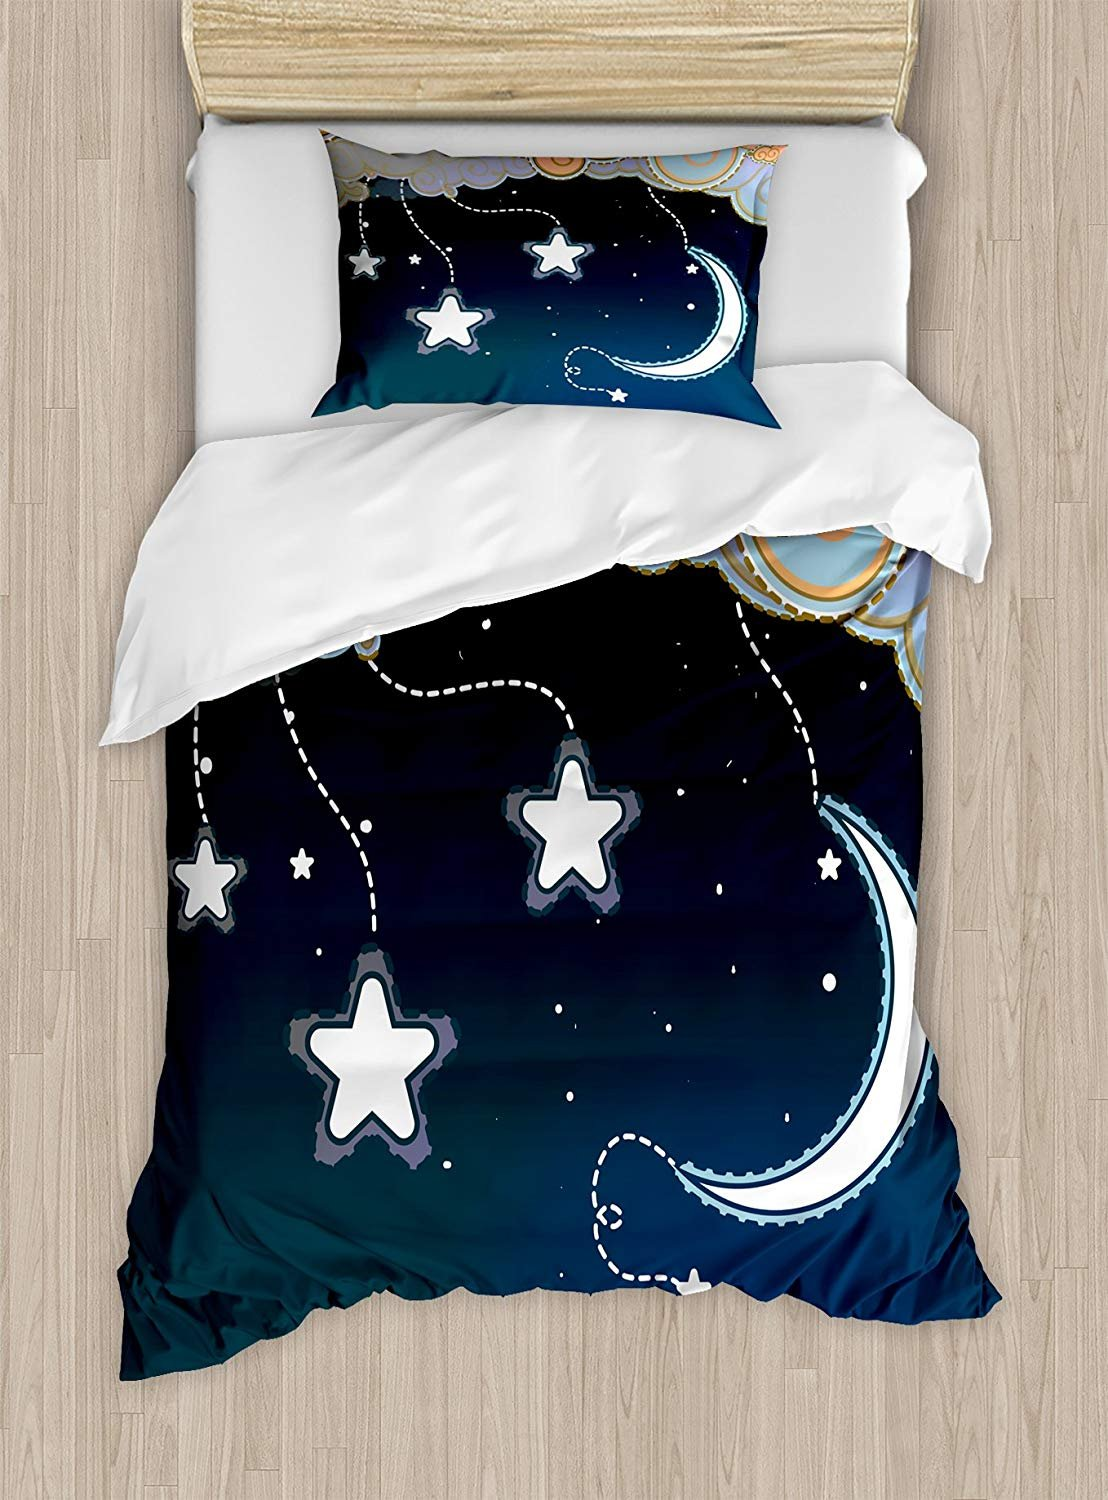 Twin XL Extra Long Bedding Set,Kids Duvet Cover Set,Cartoon Style Night Sky with Swirled Clouds Stars and Moon Dotted Lines,Cosy House Collection 4 Piece Bedding Sets